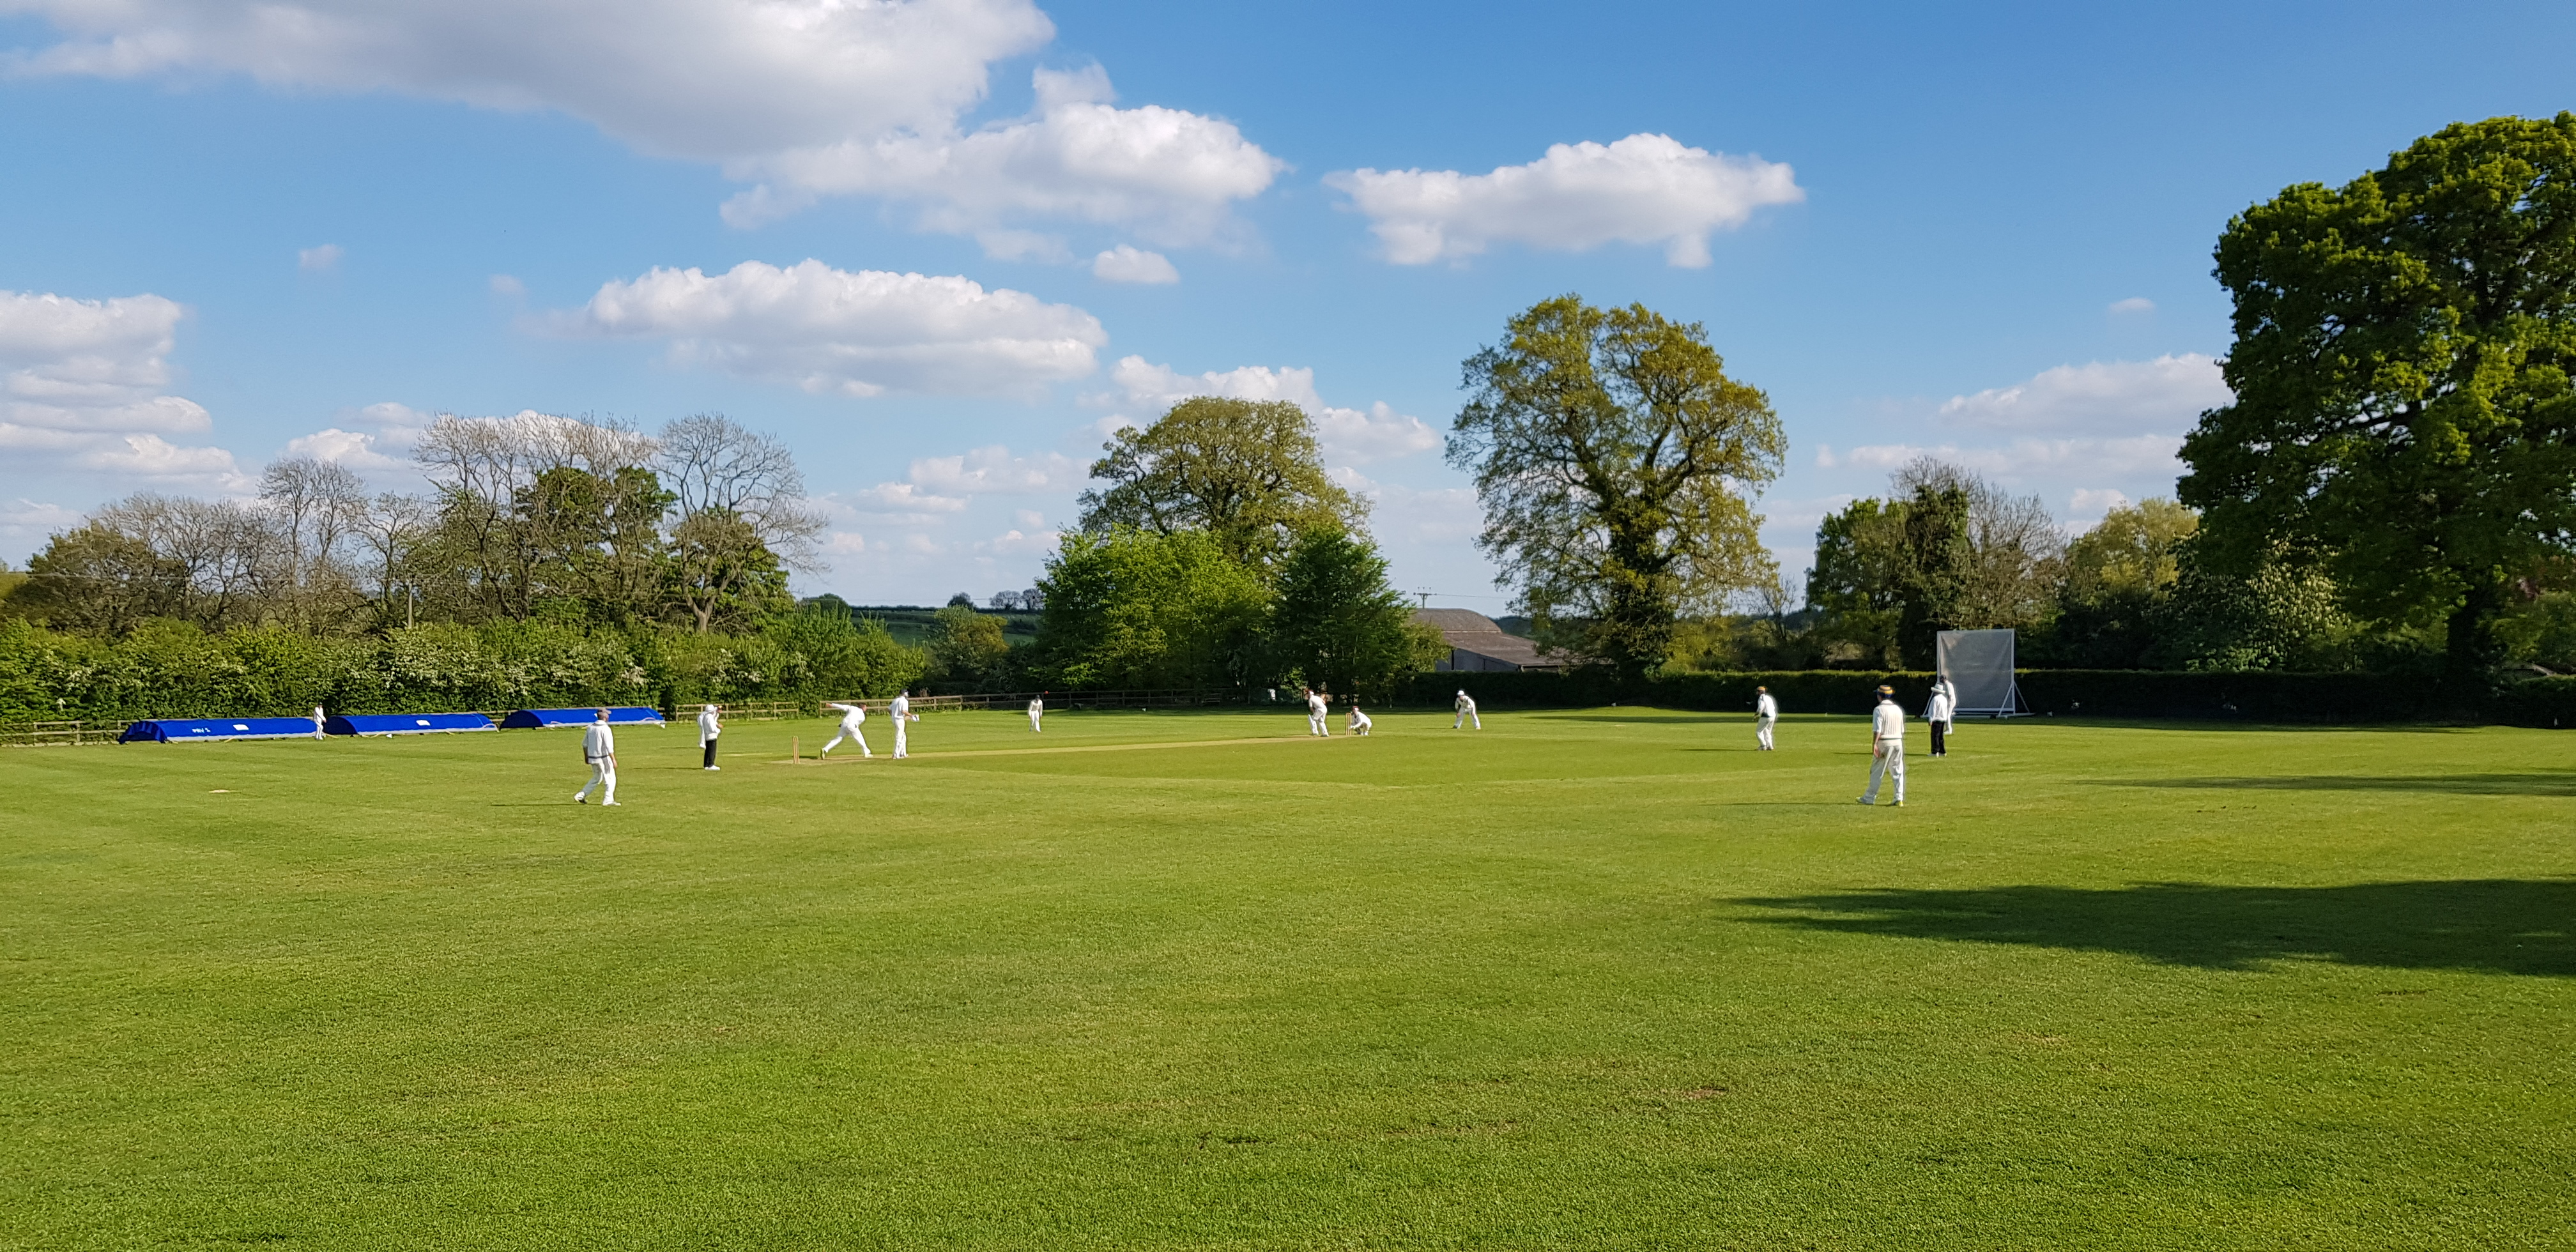 Return of cricket at Horley CC